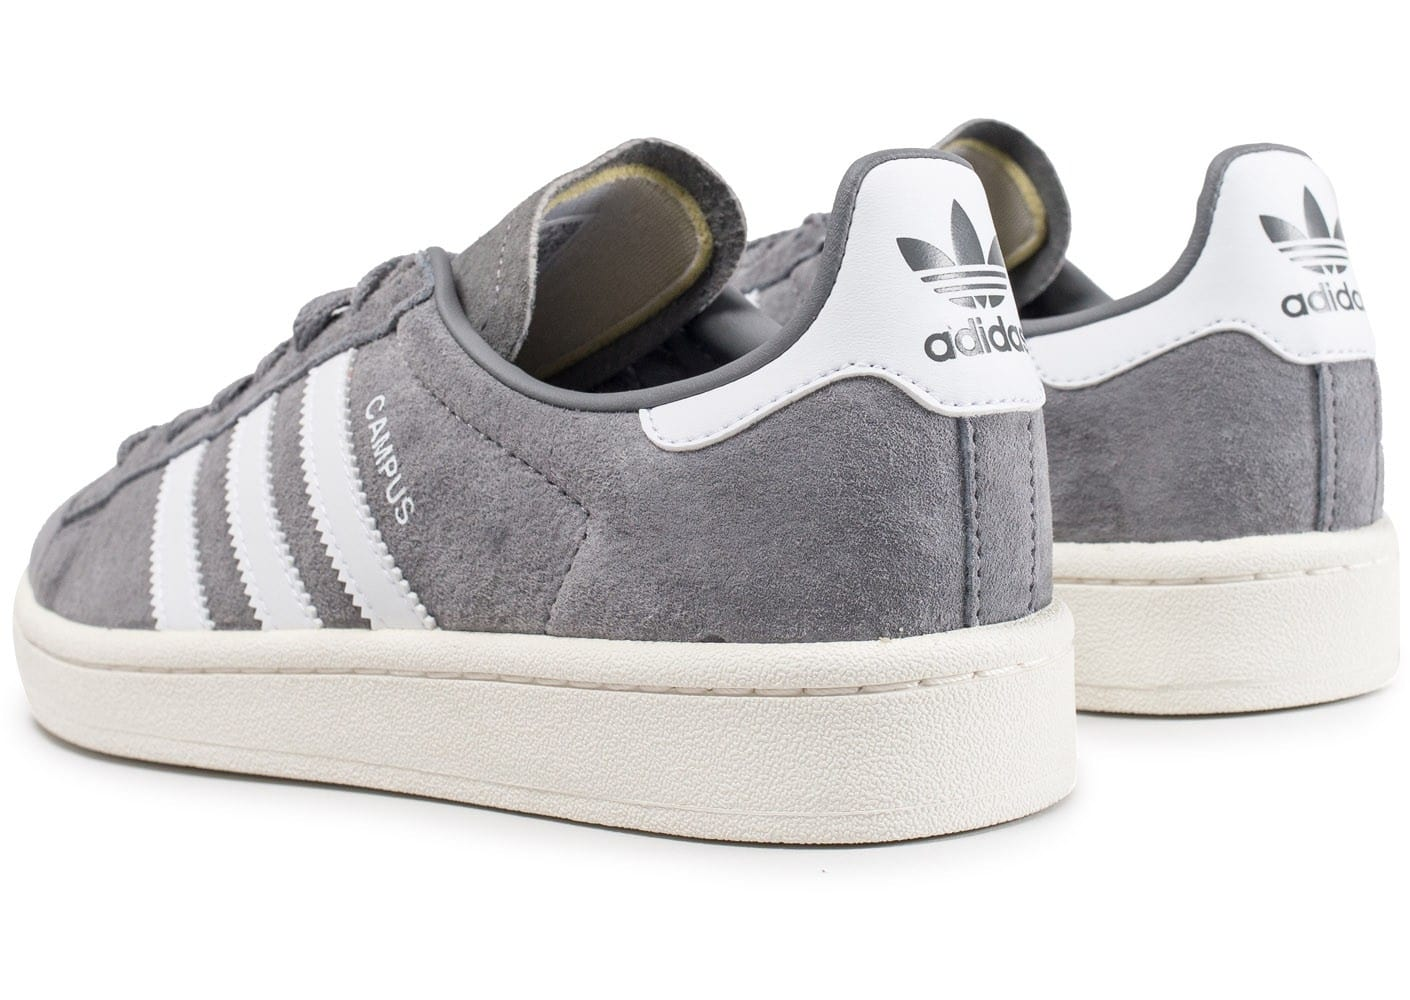 Adidas Campus baskets grise